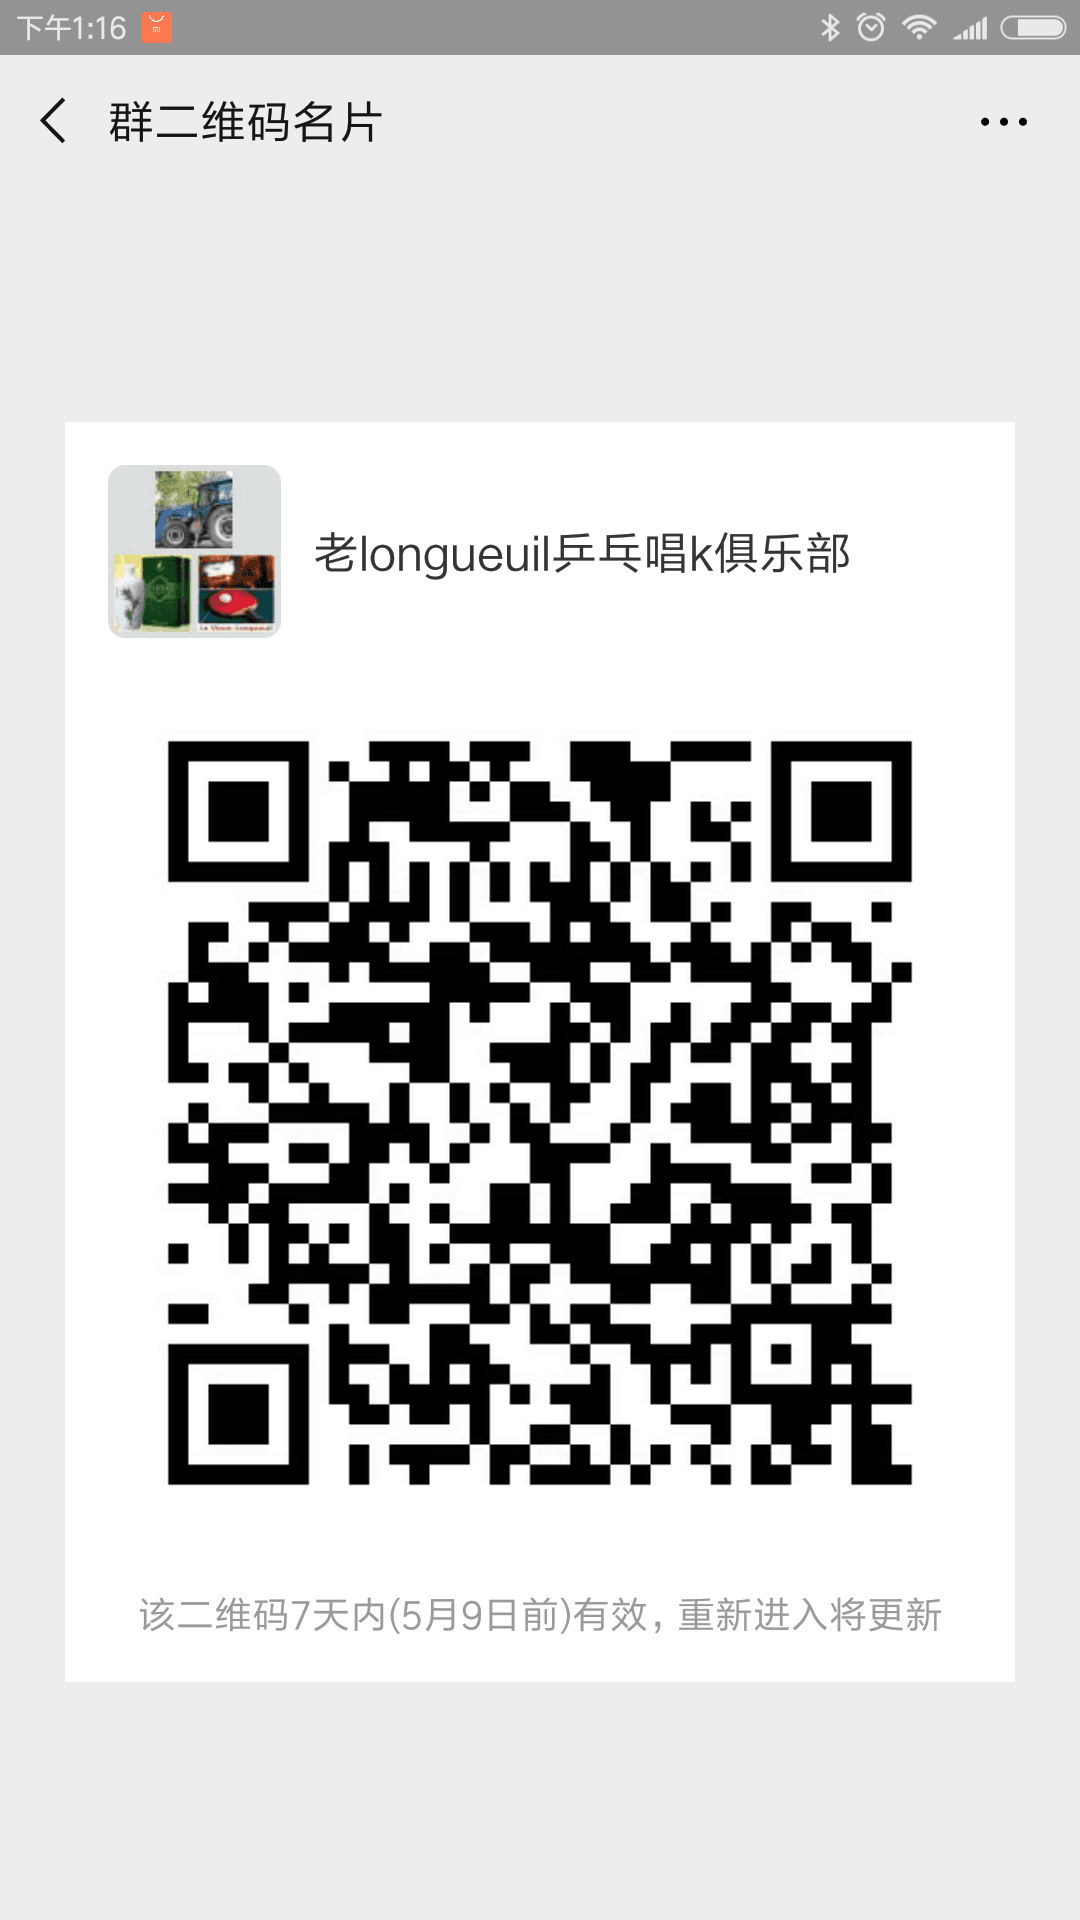 Screenshot_2019-05-02-13-16-53-737_com.tencent.mm.png